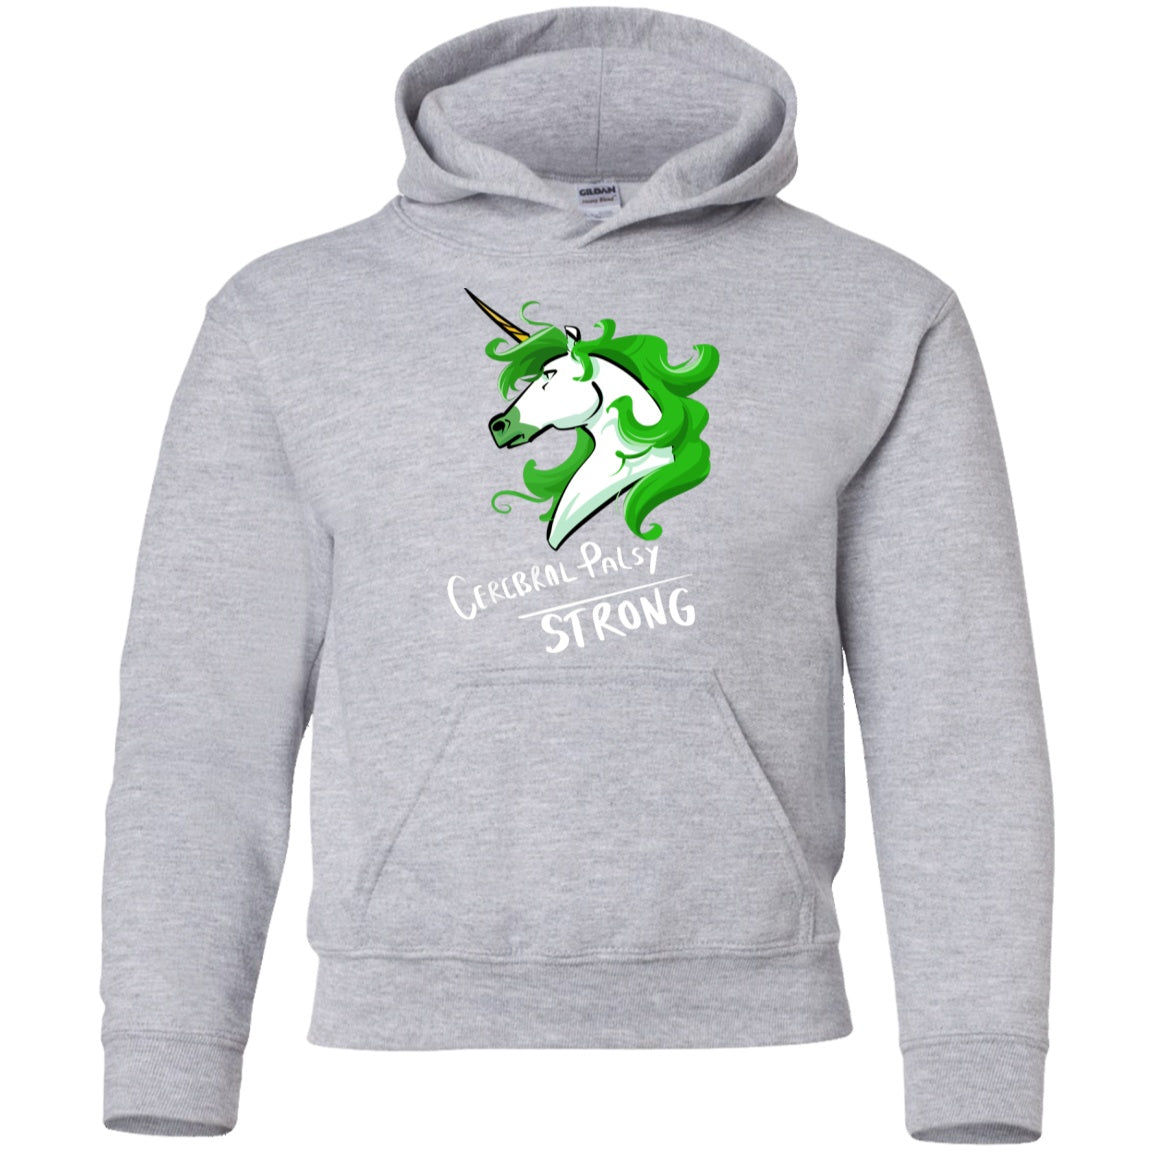 Cerebral Palsy Strong Unicorn Youth Pullover Hoodie - The Unchargeables